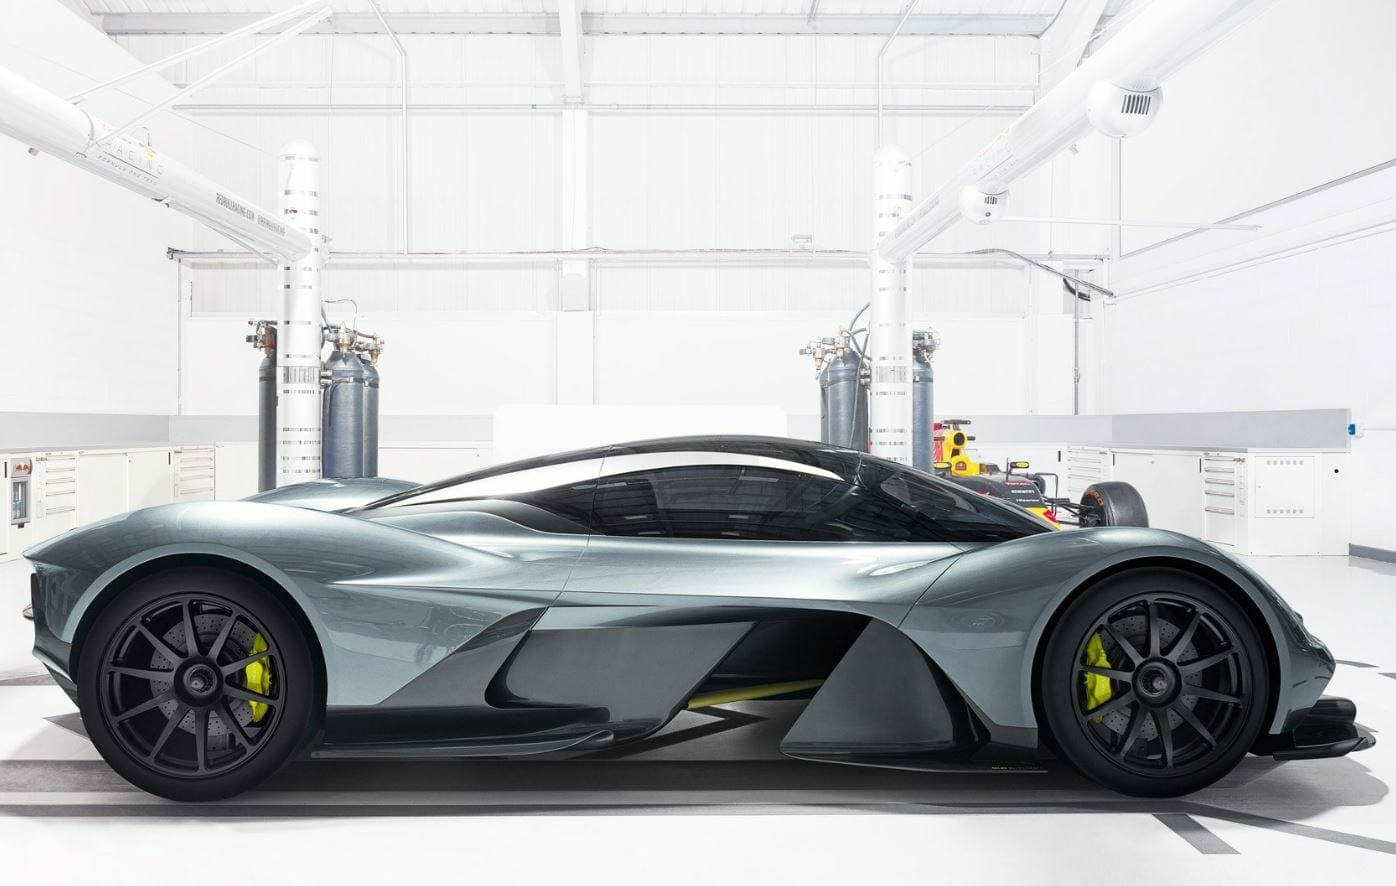 New Supercar - Aston Martin and Red Bull Collaborate on Incredible Hypercar, The AM-RB 001